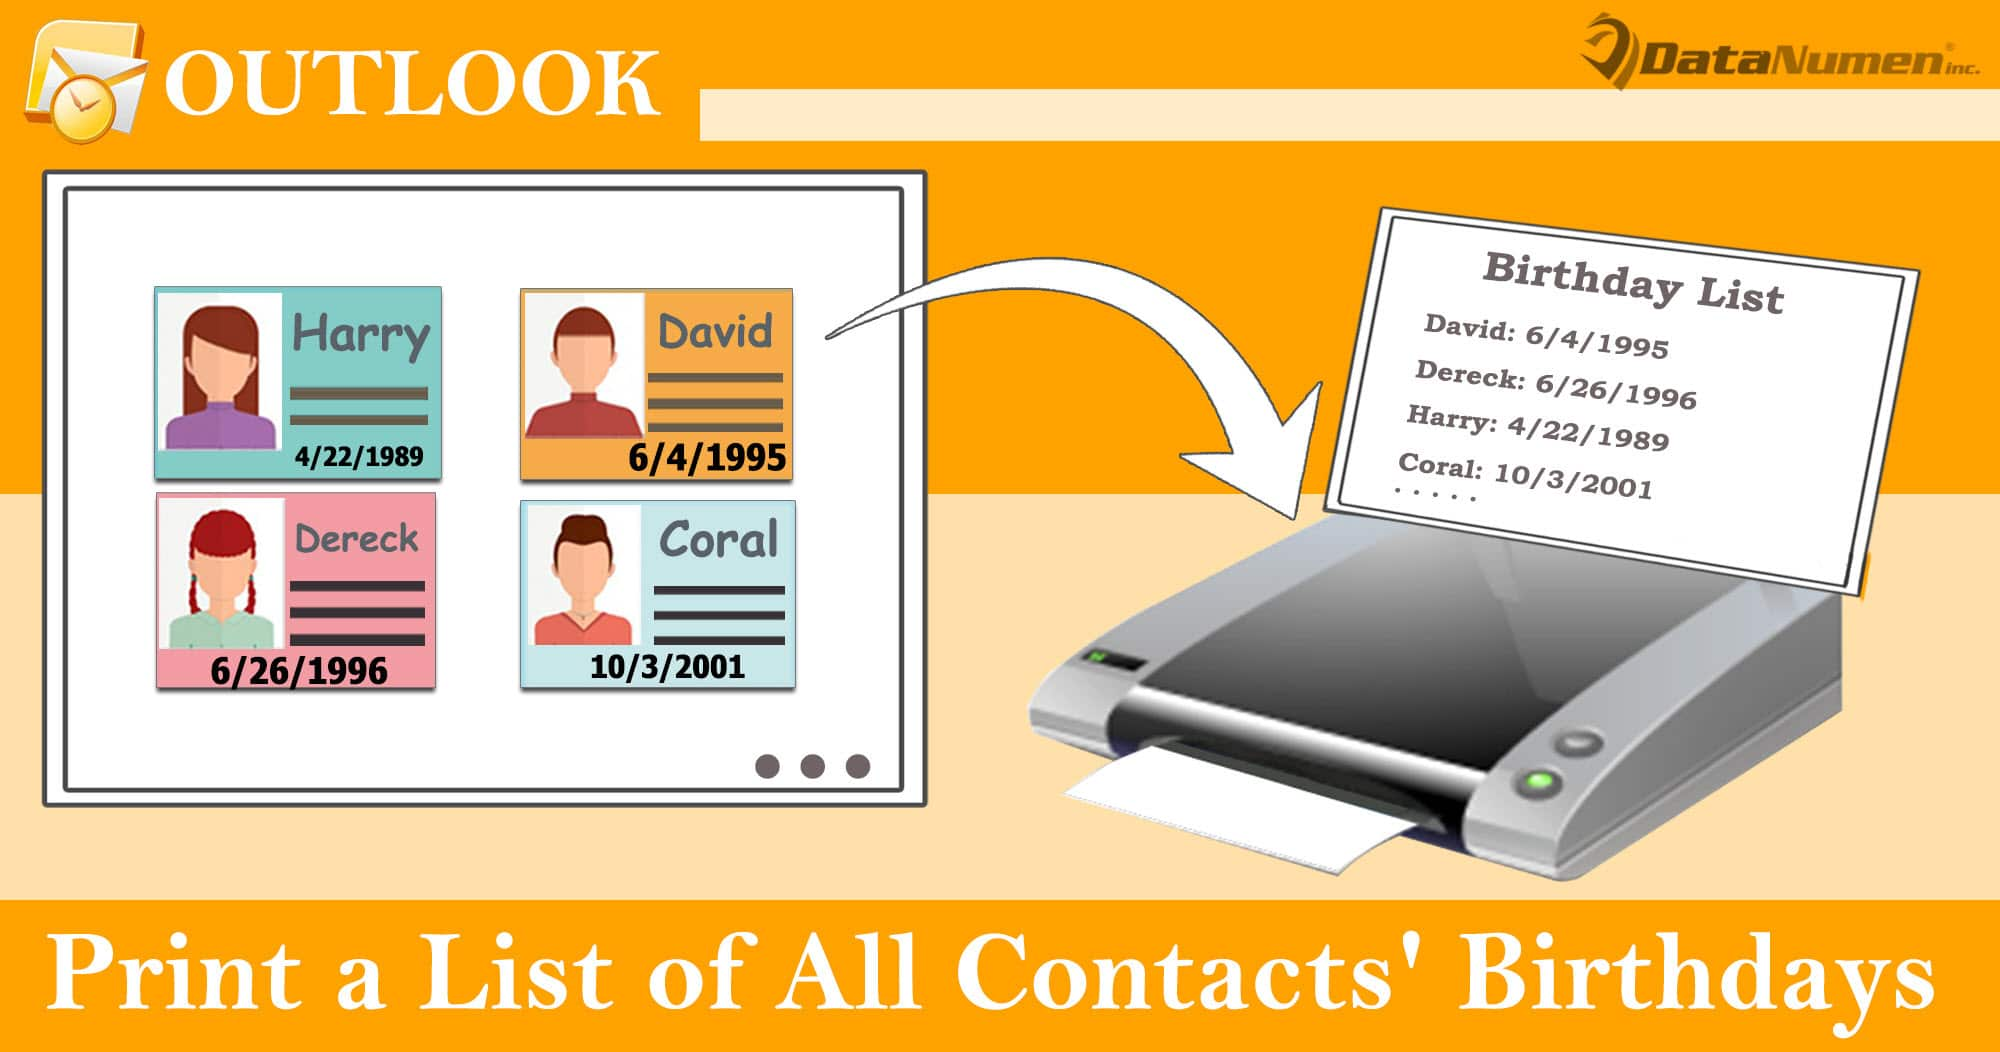 Quickly Print a List of All Contacts' Birthdays in Your Outlook